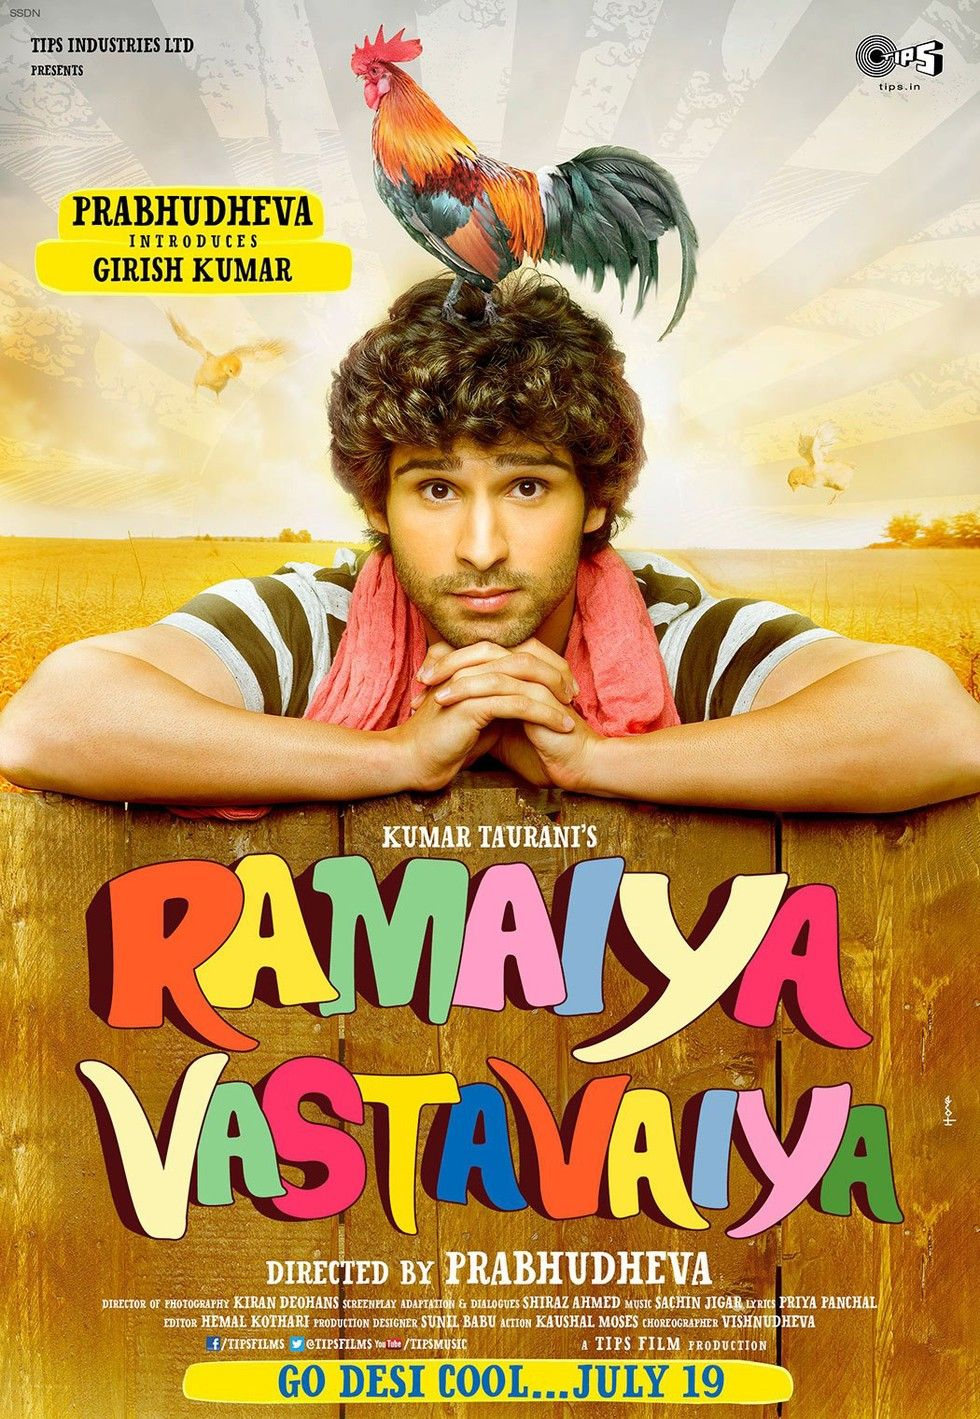 ramaiya vastavaiya - movie poster #10 | bollywood movie posters